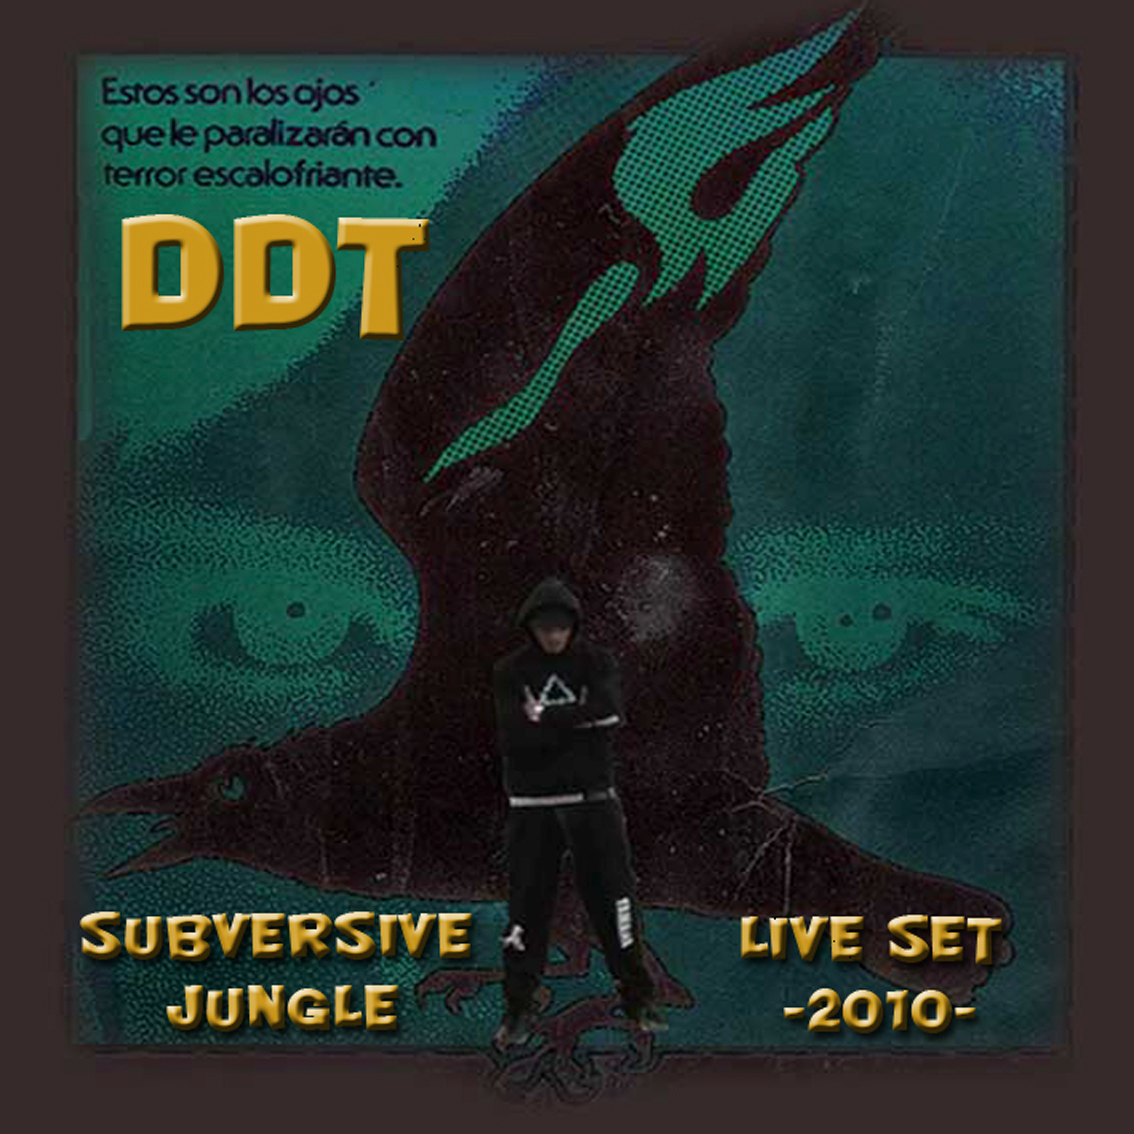 DOWNLOAD-Subversive Jungle Live Set 2010